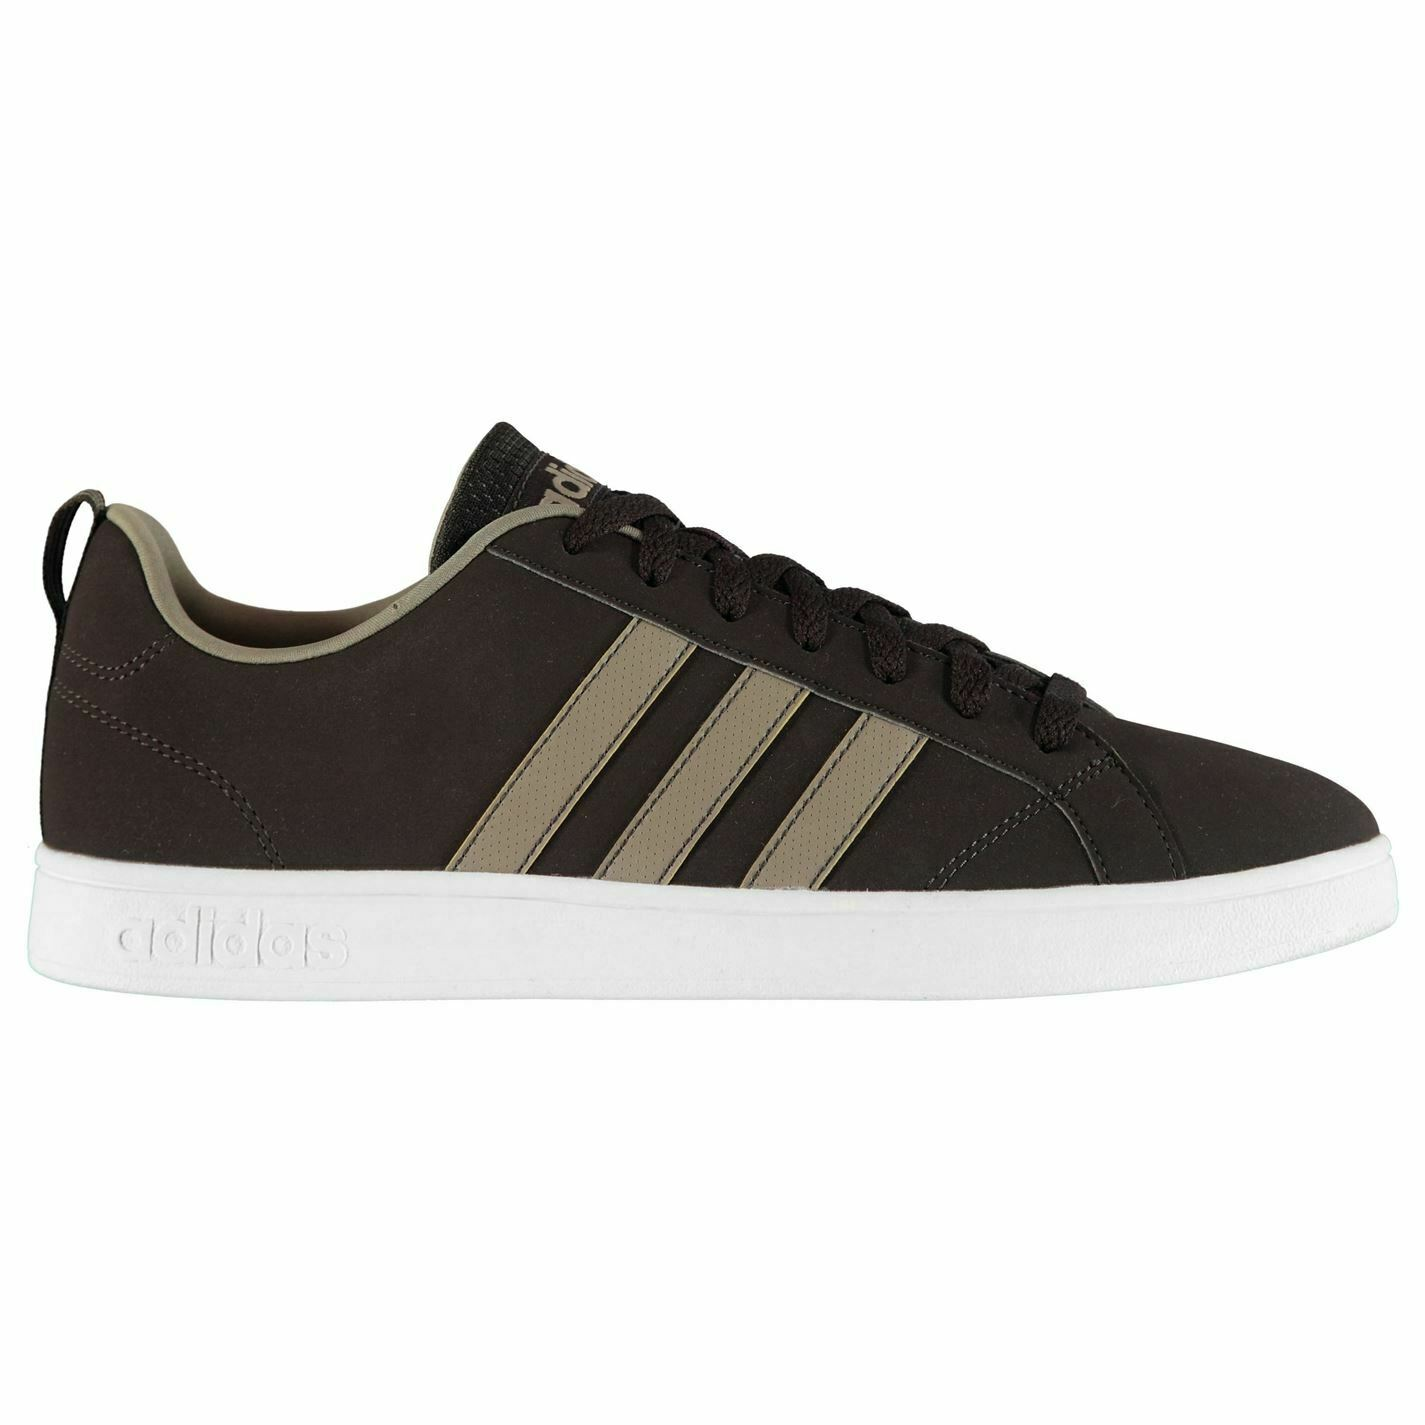 Adidas Mens Advantage Nubuck 92 Running Sports shoes Trainers Pumps Sneakers